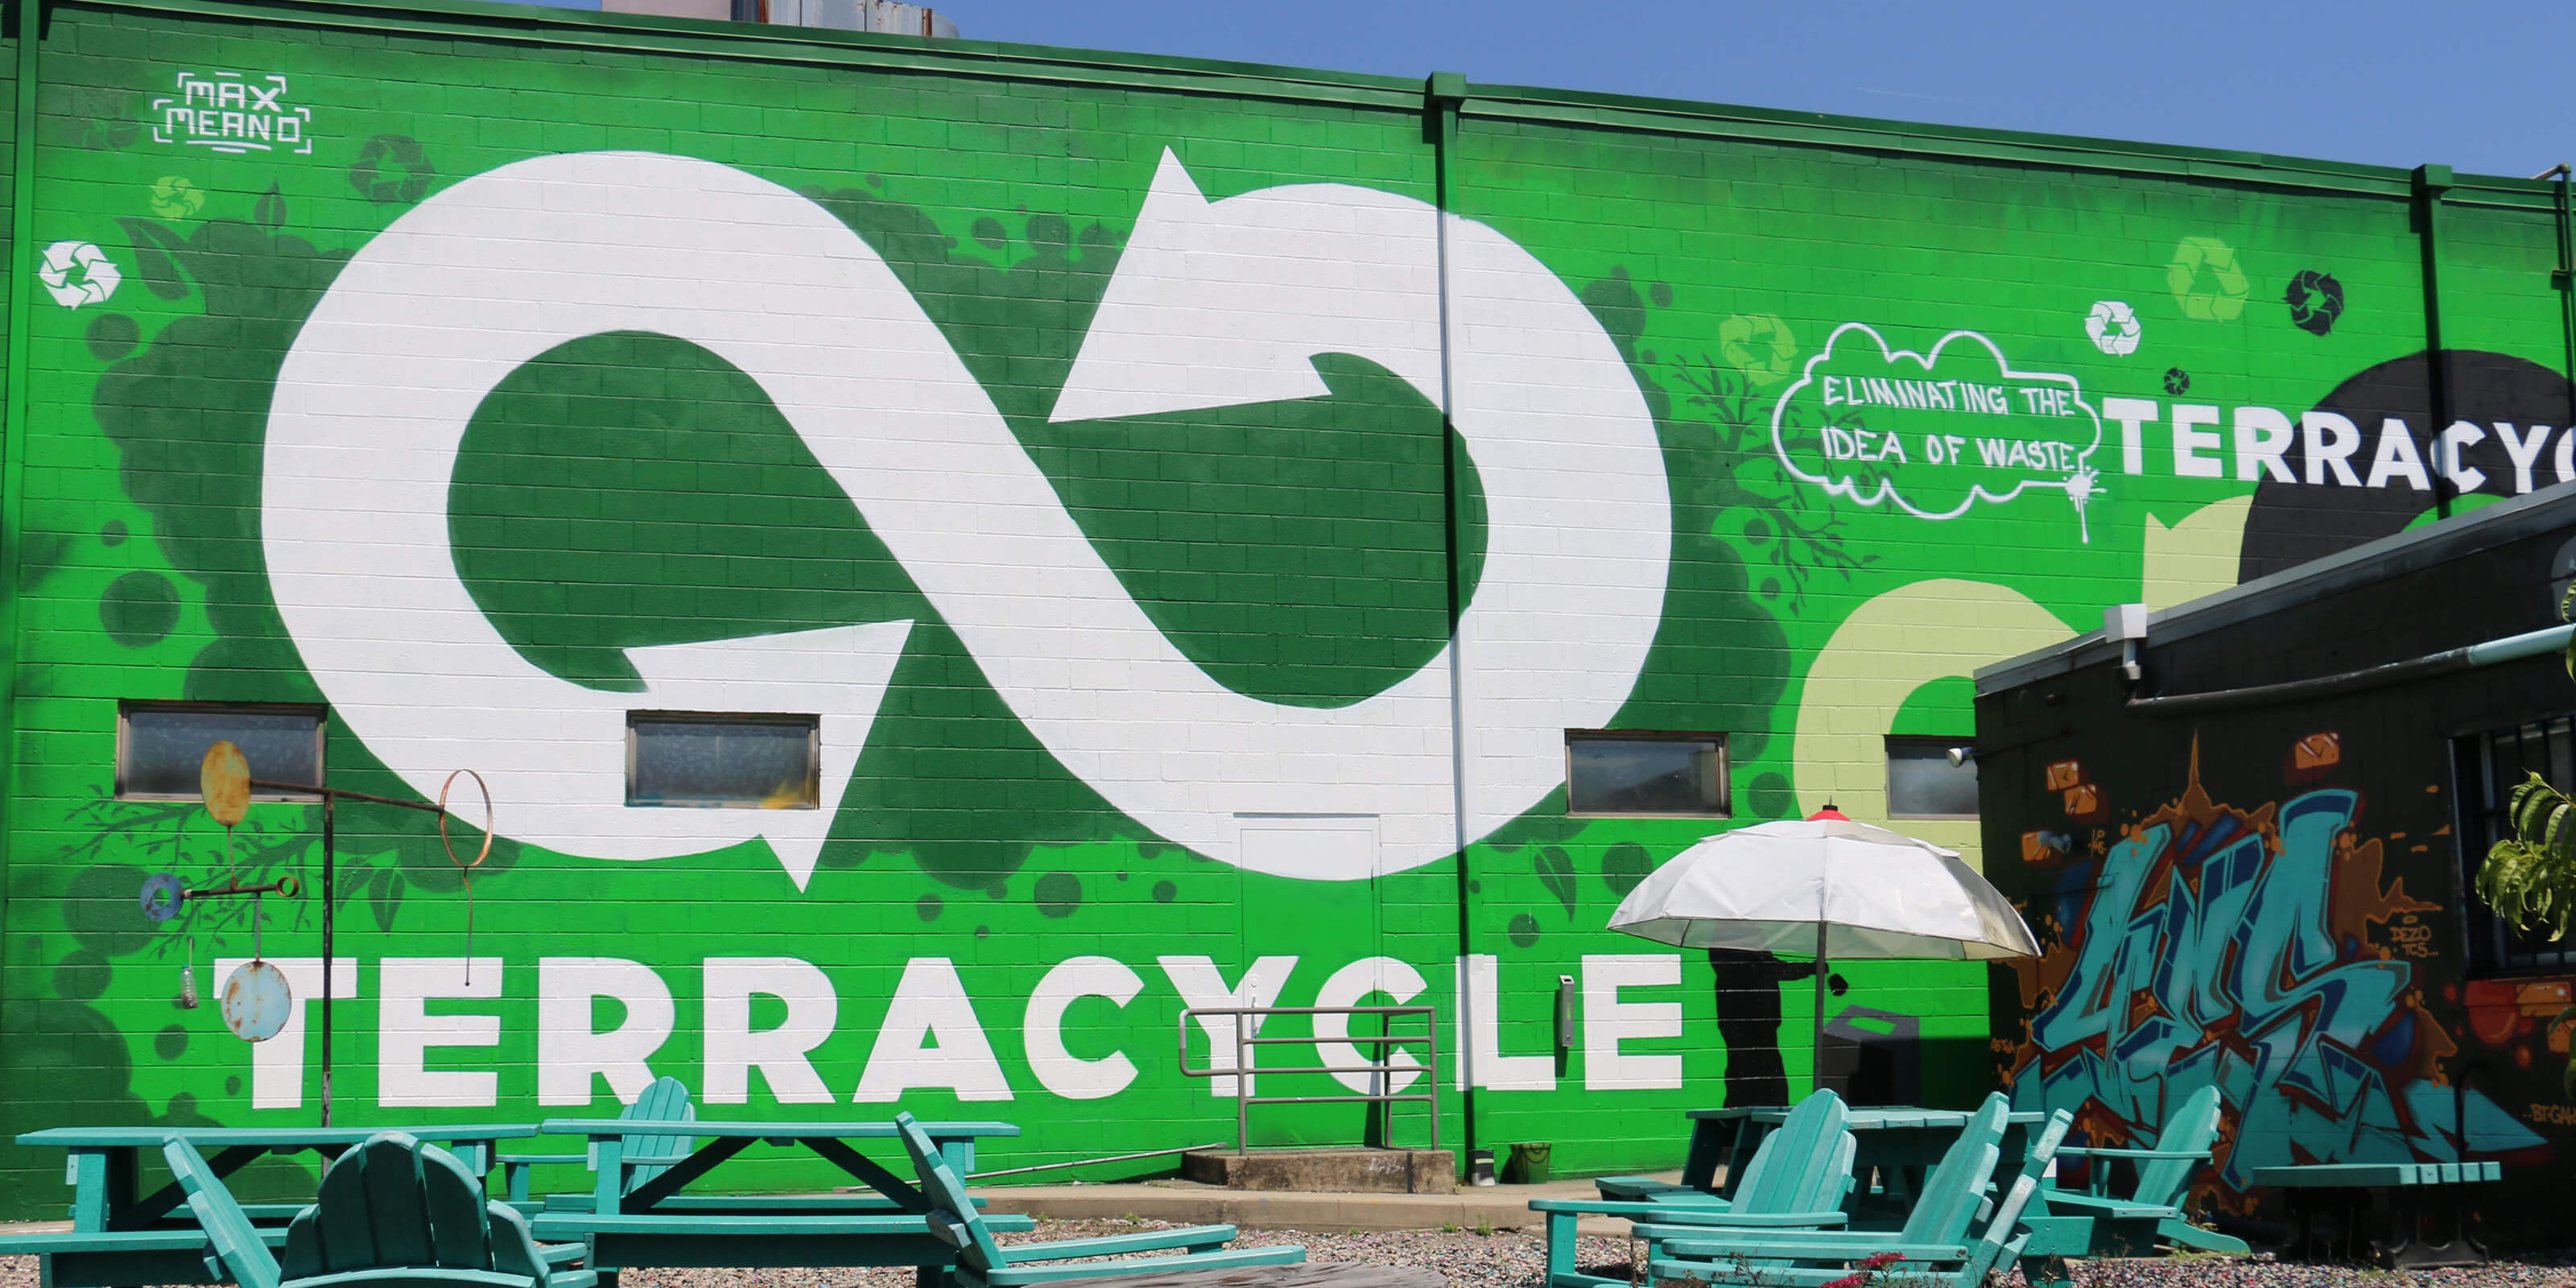 terracycle wall mural, wooden lawn chairs, table